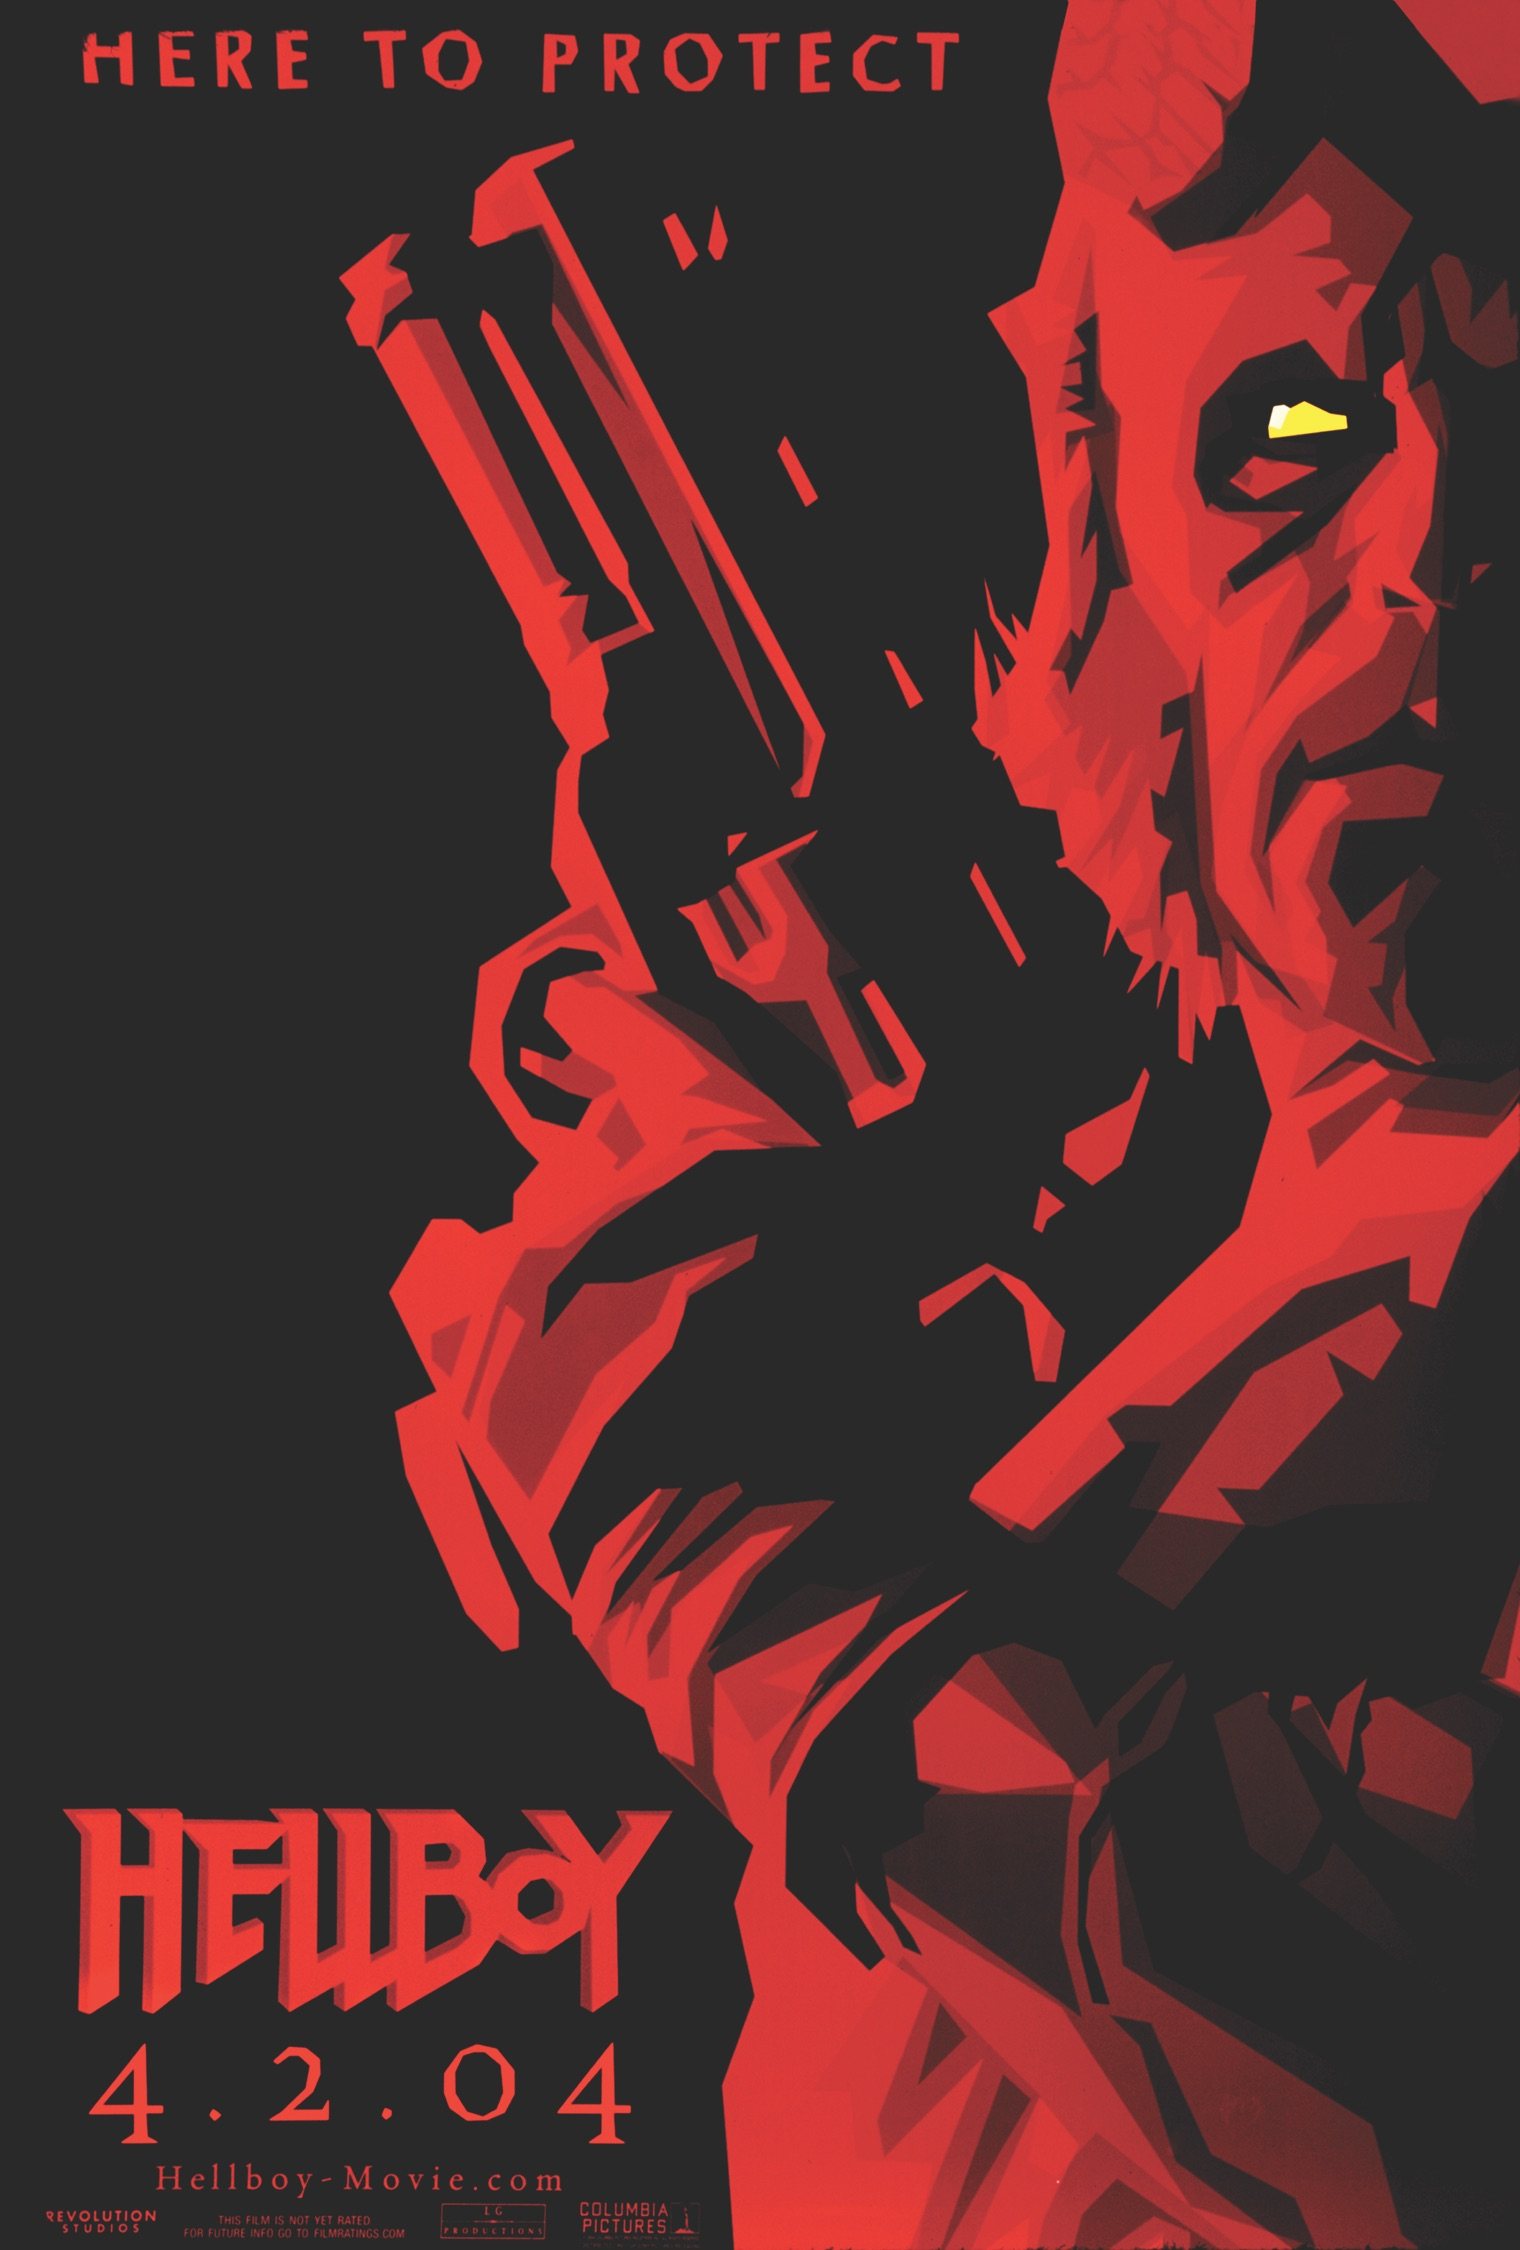 046_HELLBOY_WILDPOST_CMYK copy.jpg